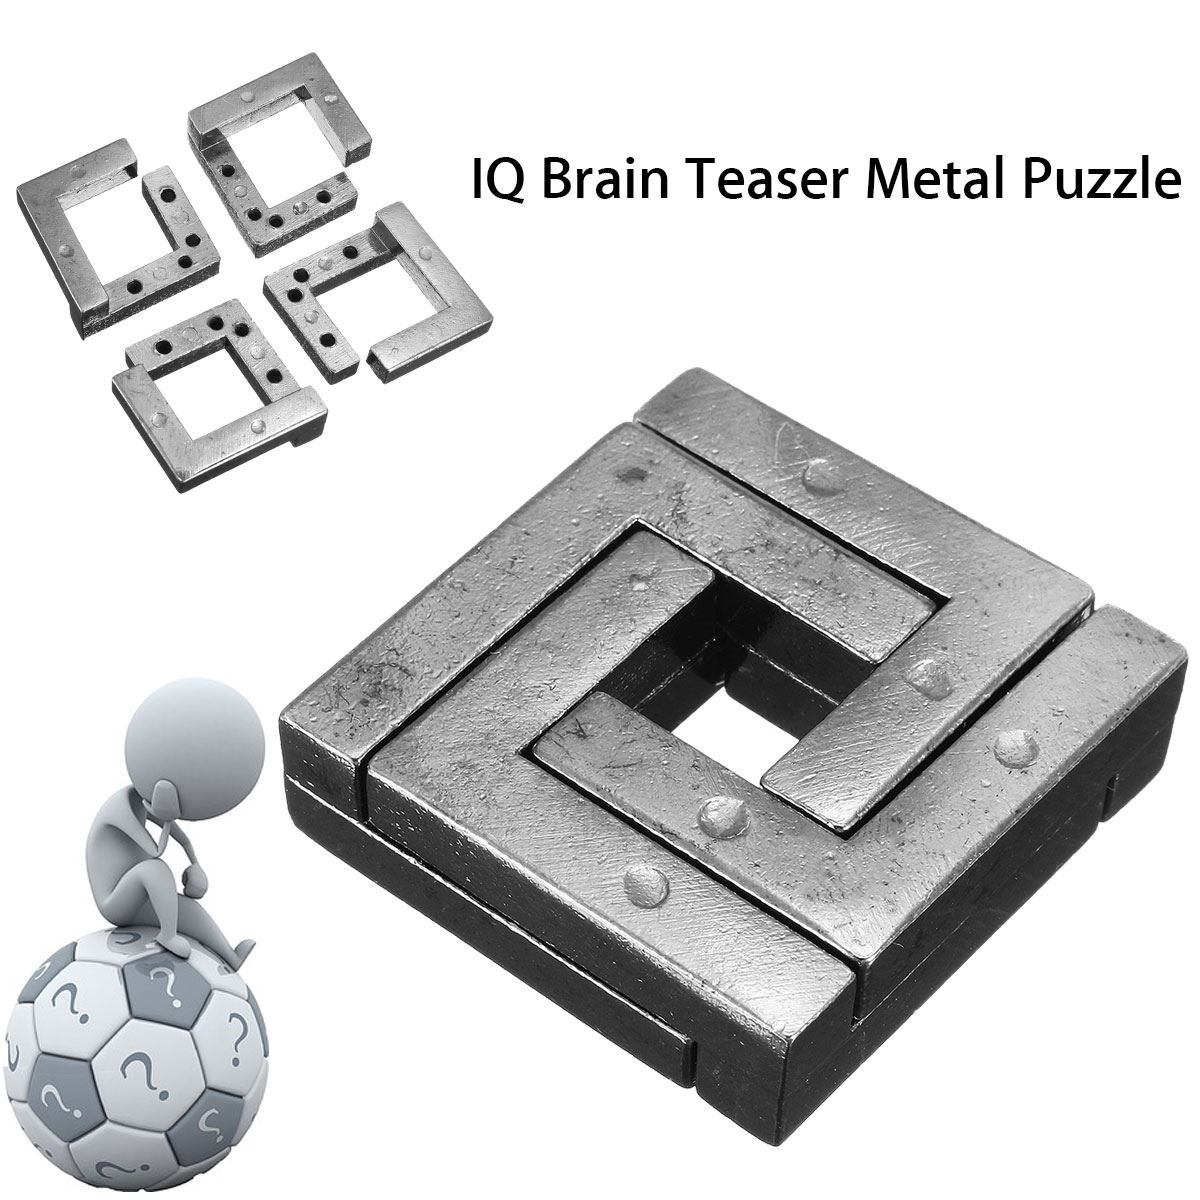 Metal Puzzle IQ Mind Brain Game Teaser Square Educational Toy Gift For Children Adult Kid Game Toy metal puzzle iq mind brain game teaser square educational toy gift for children adult kid game toy